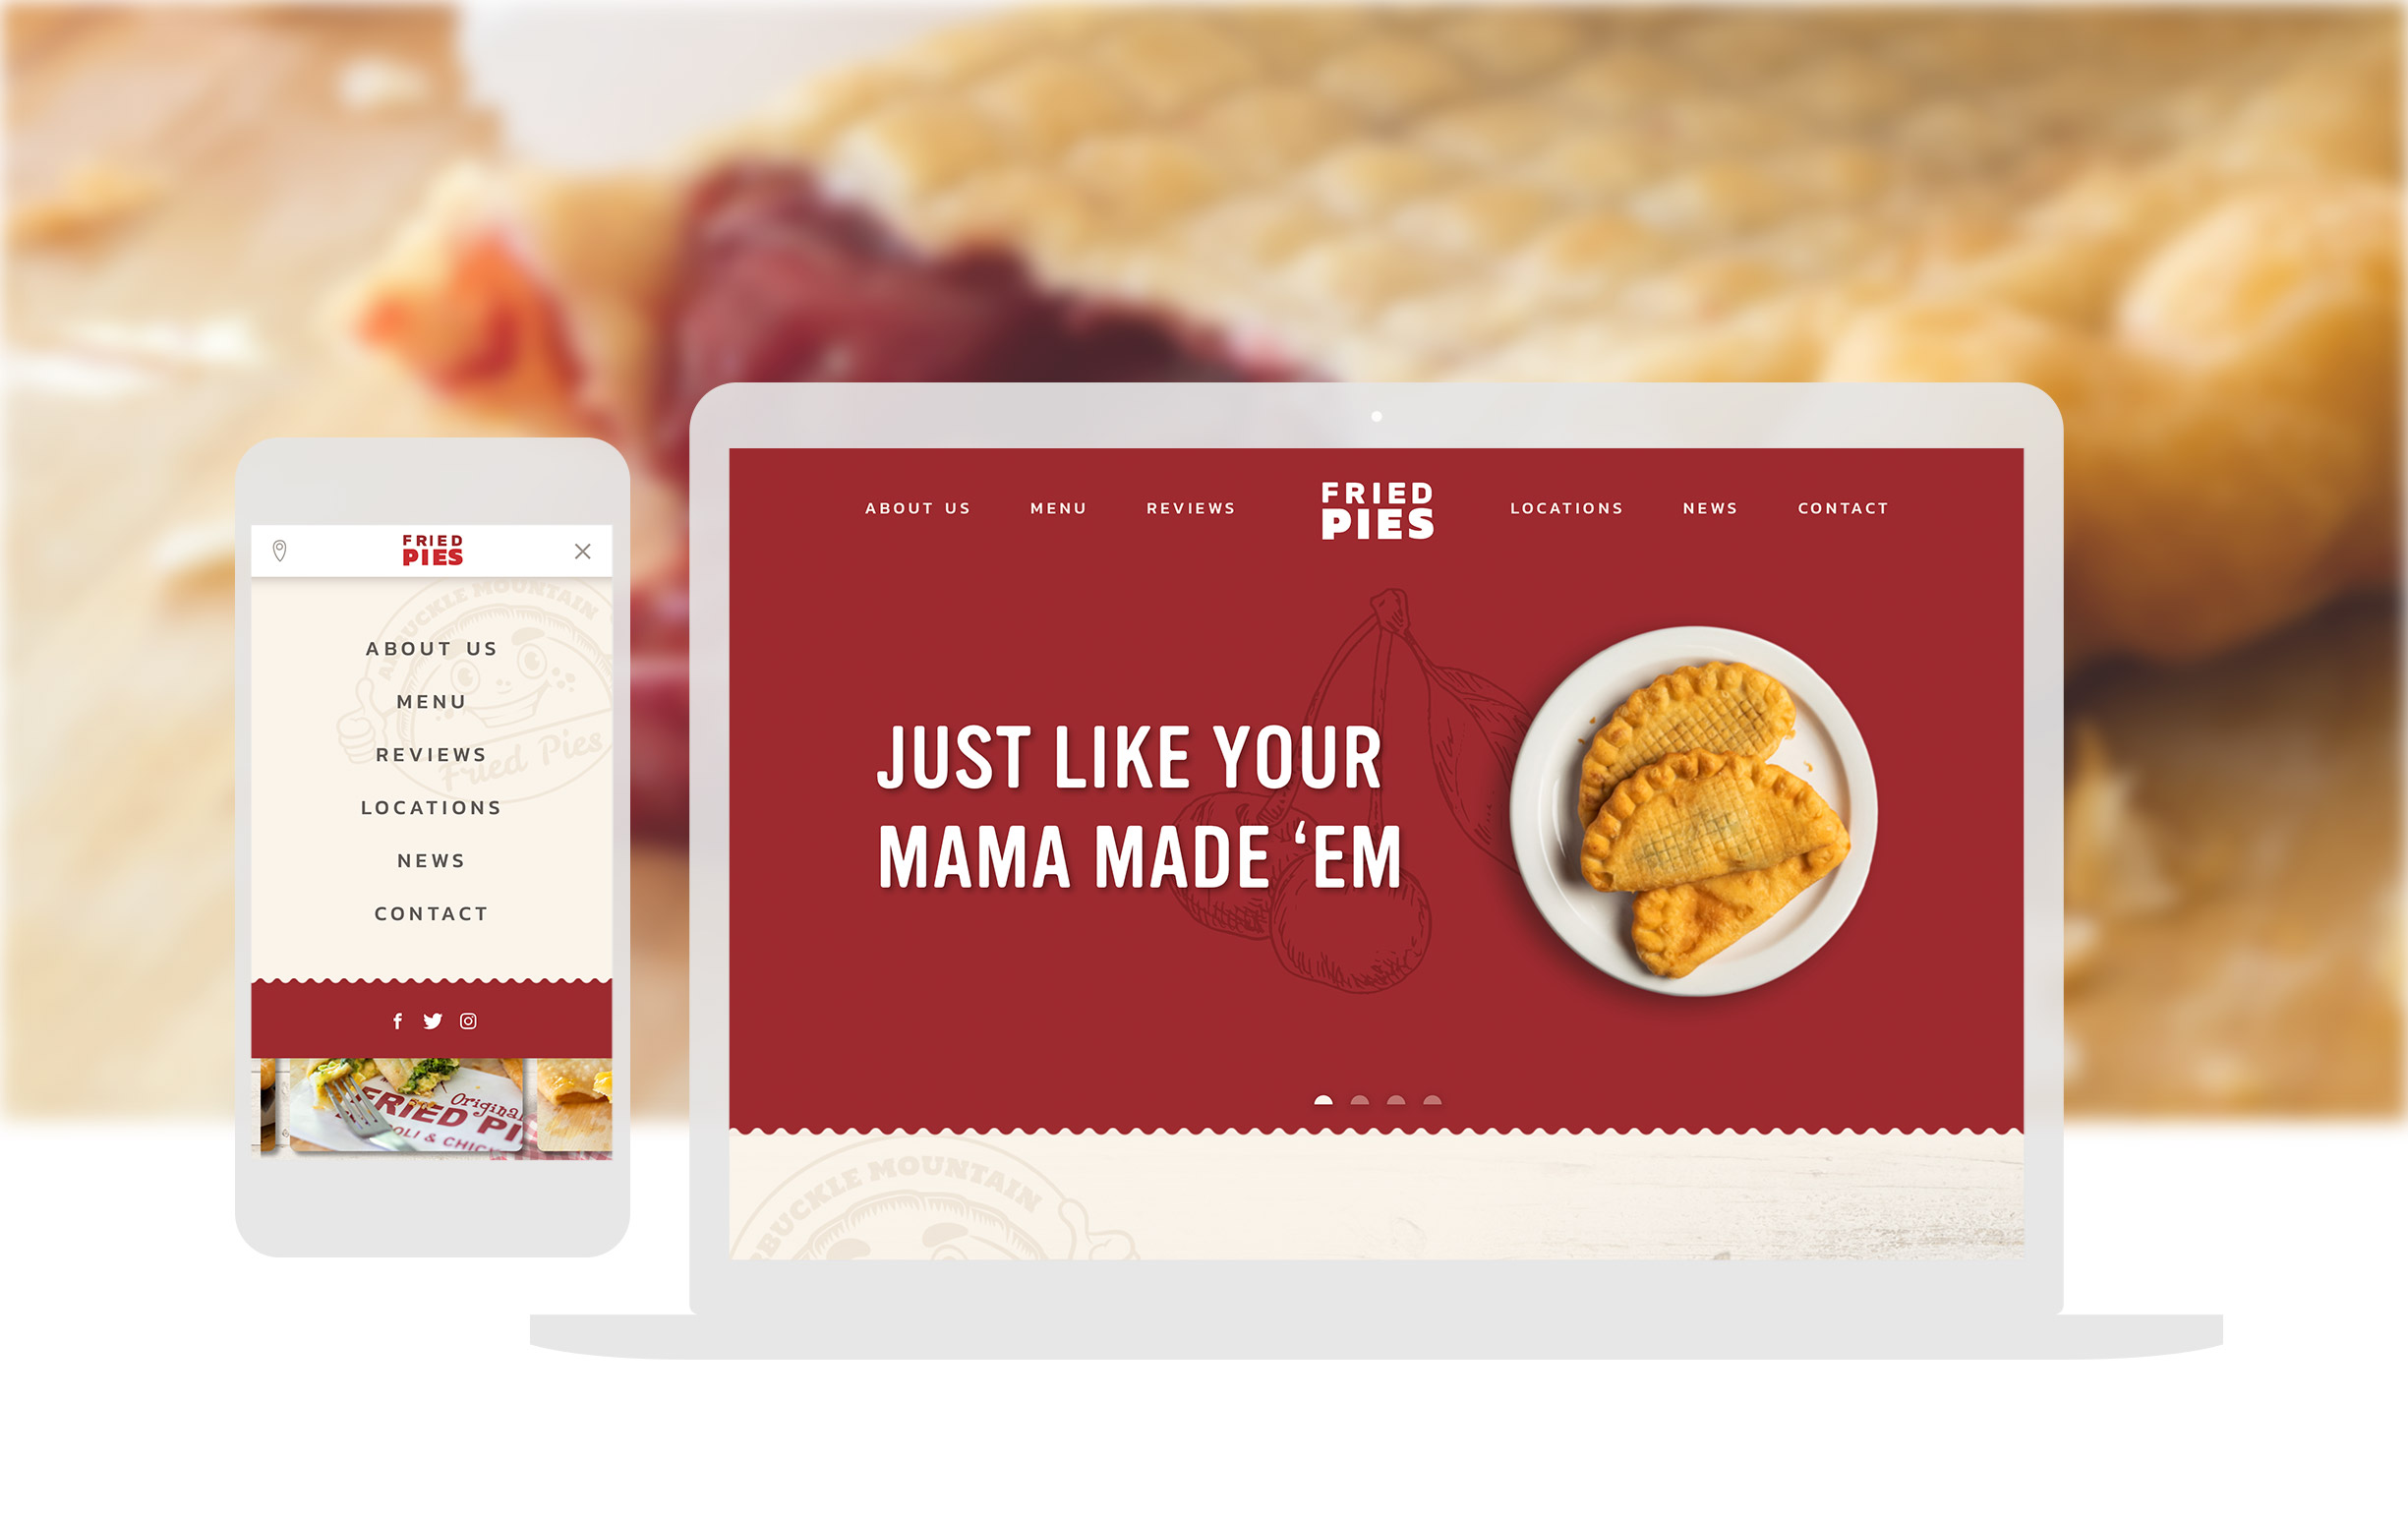 Fried Pies Full Width Image